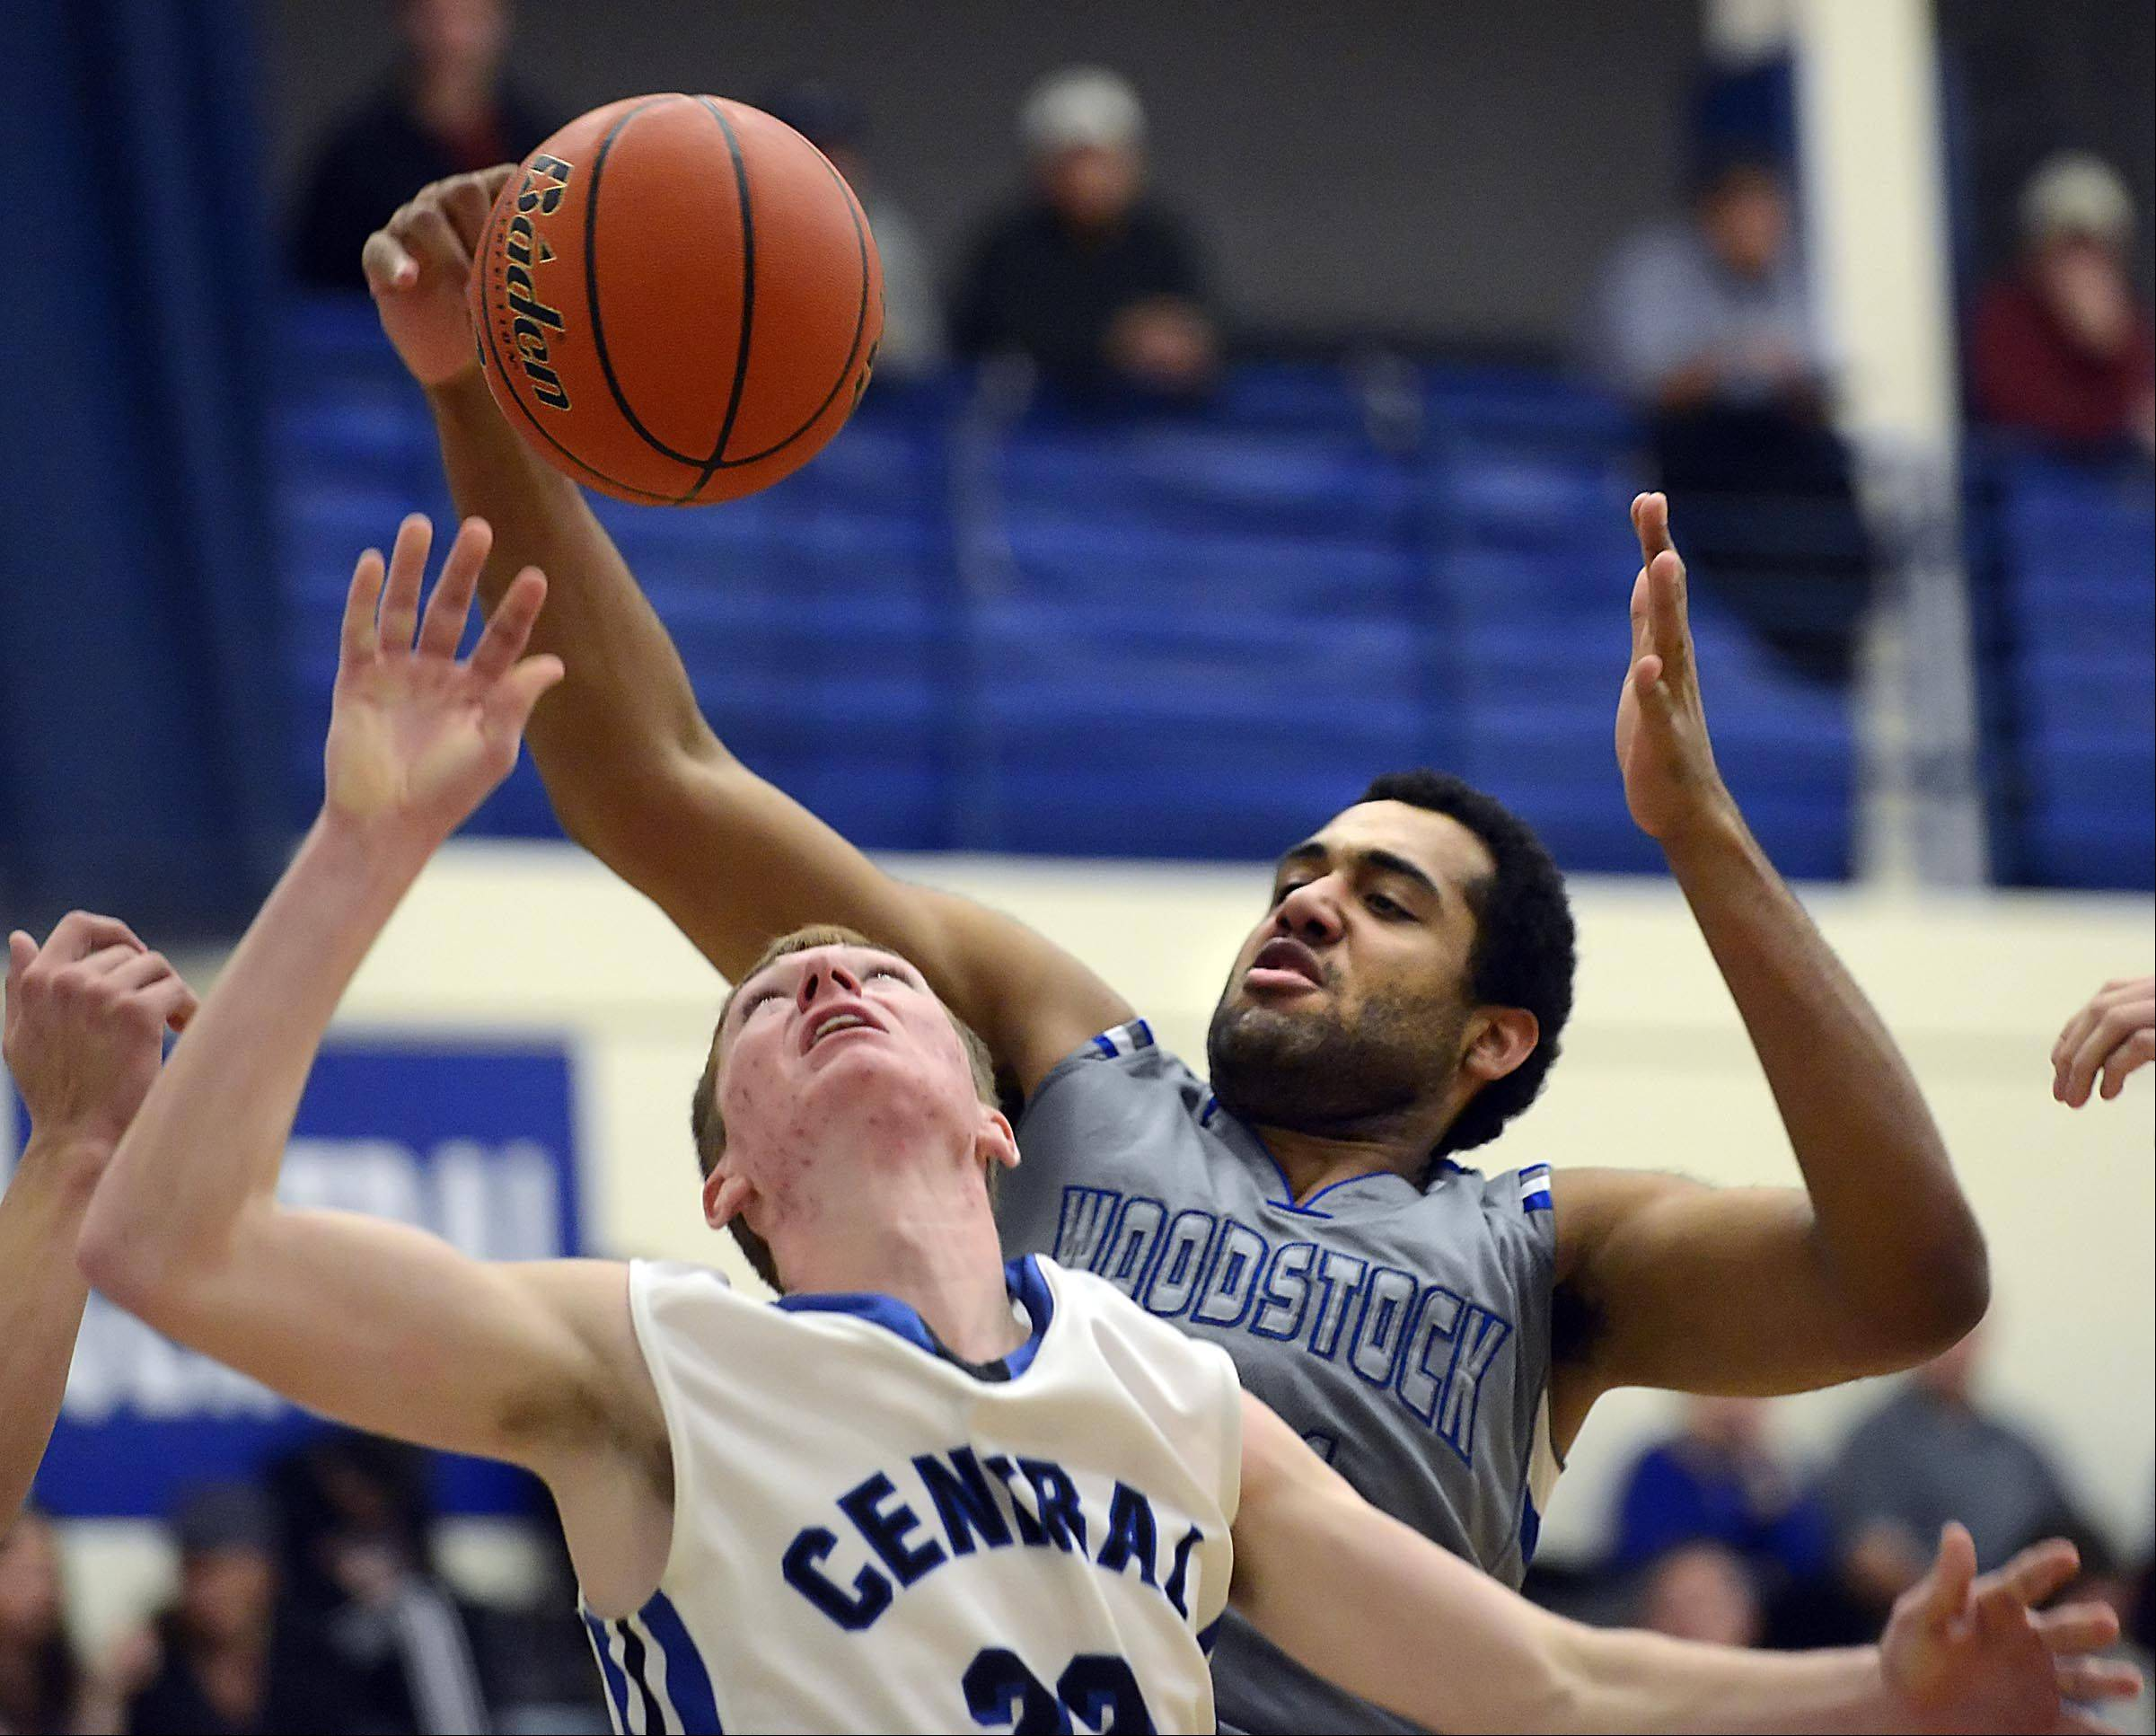 Burlington Central�s Sean Fitzgerald and Woodstock�s Damian Stoneking compete for a rebound.